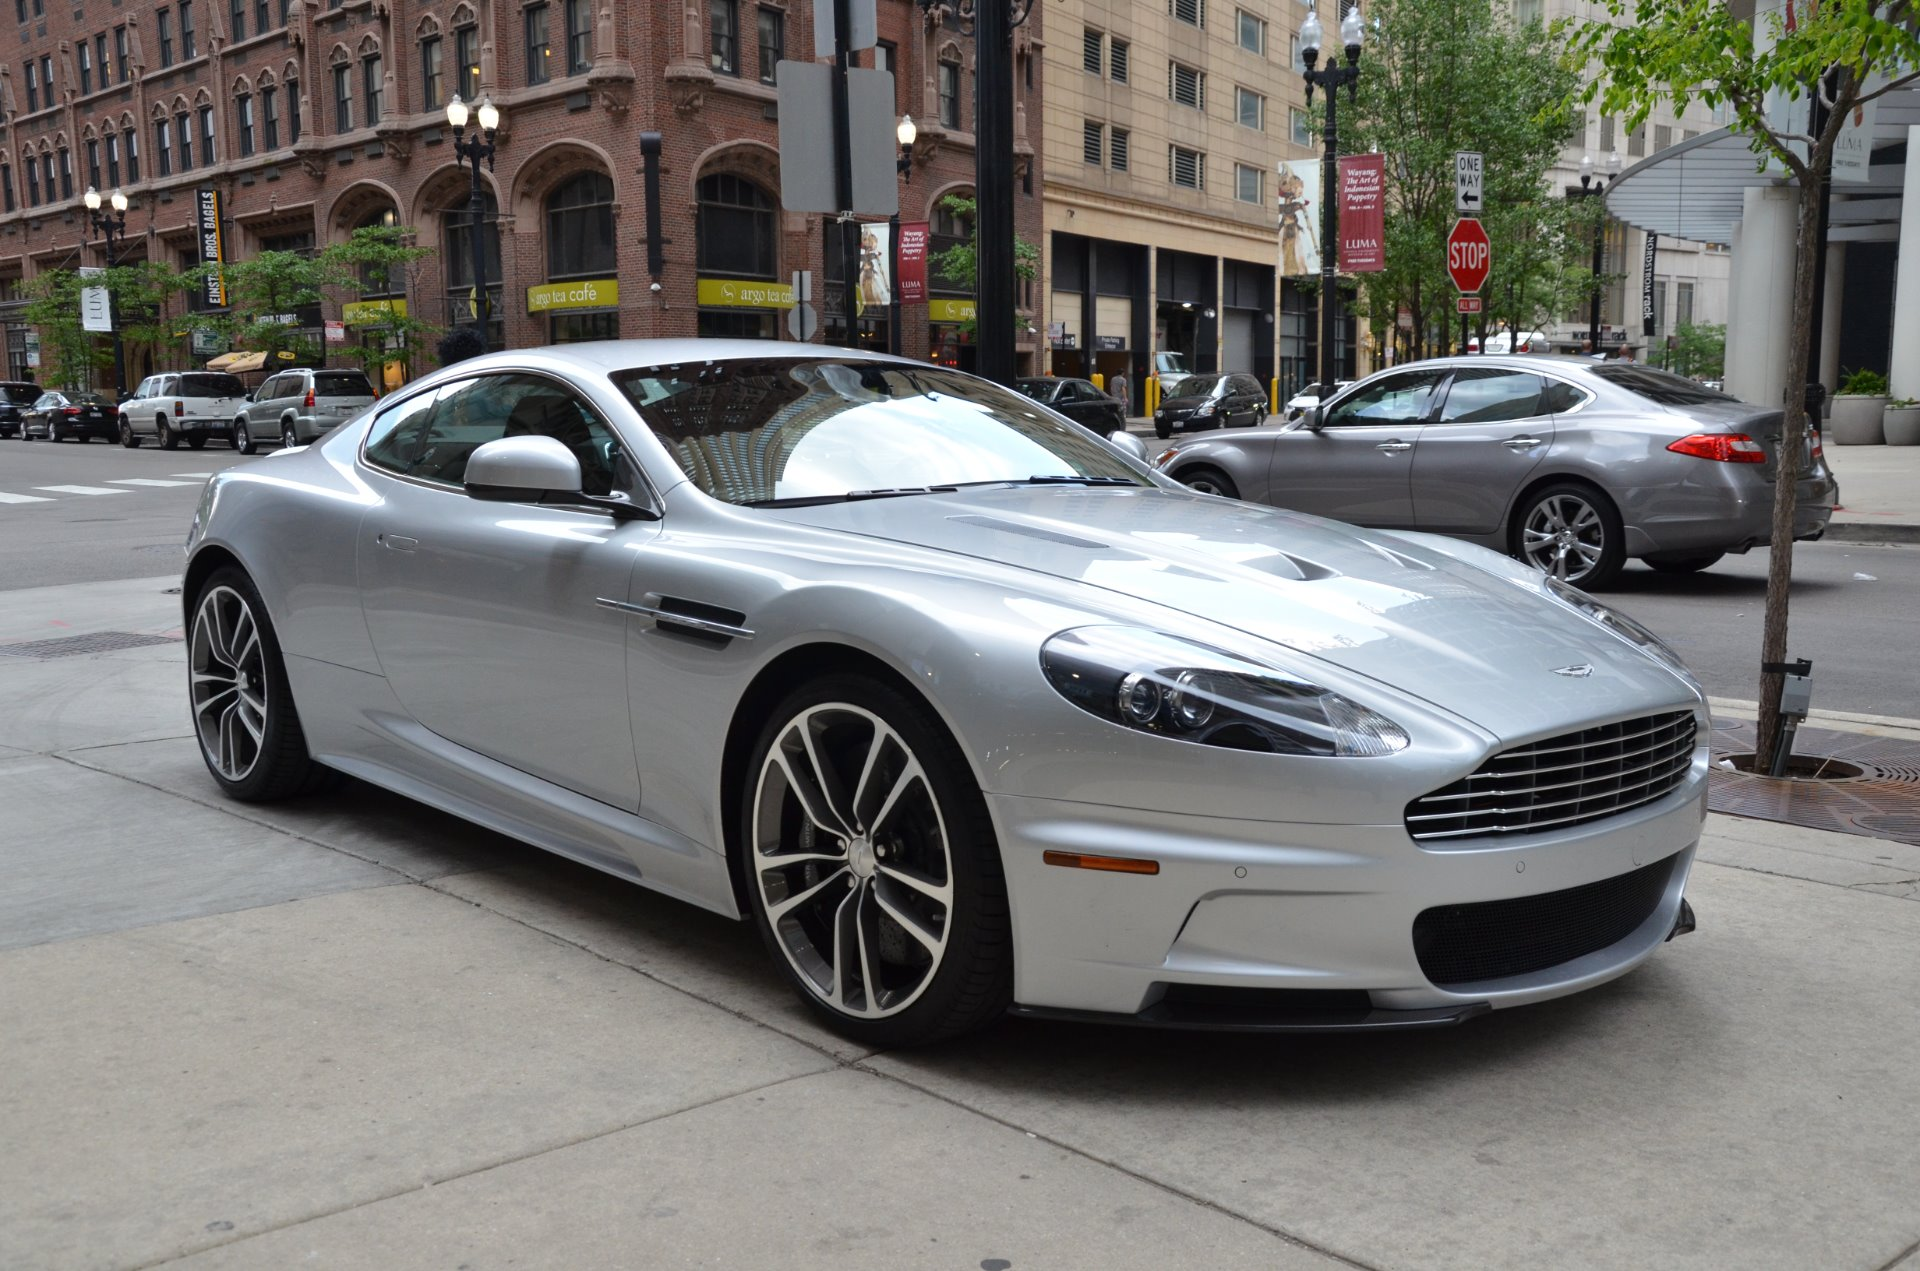 2012 Aston Martin DBS Stock # R225AA for sale near Chicago